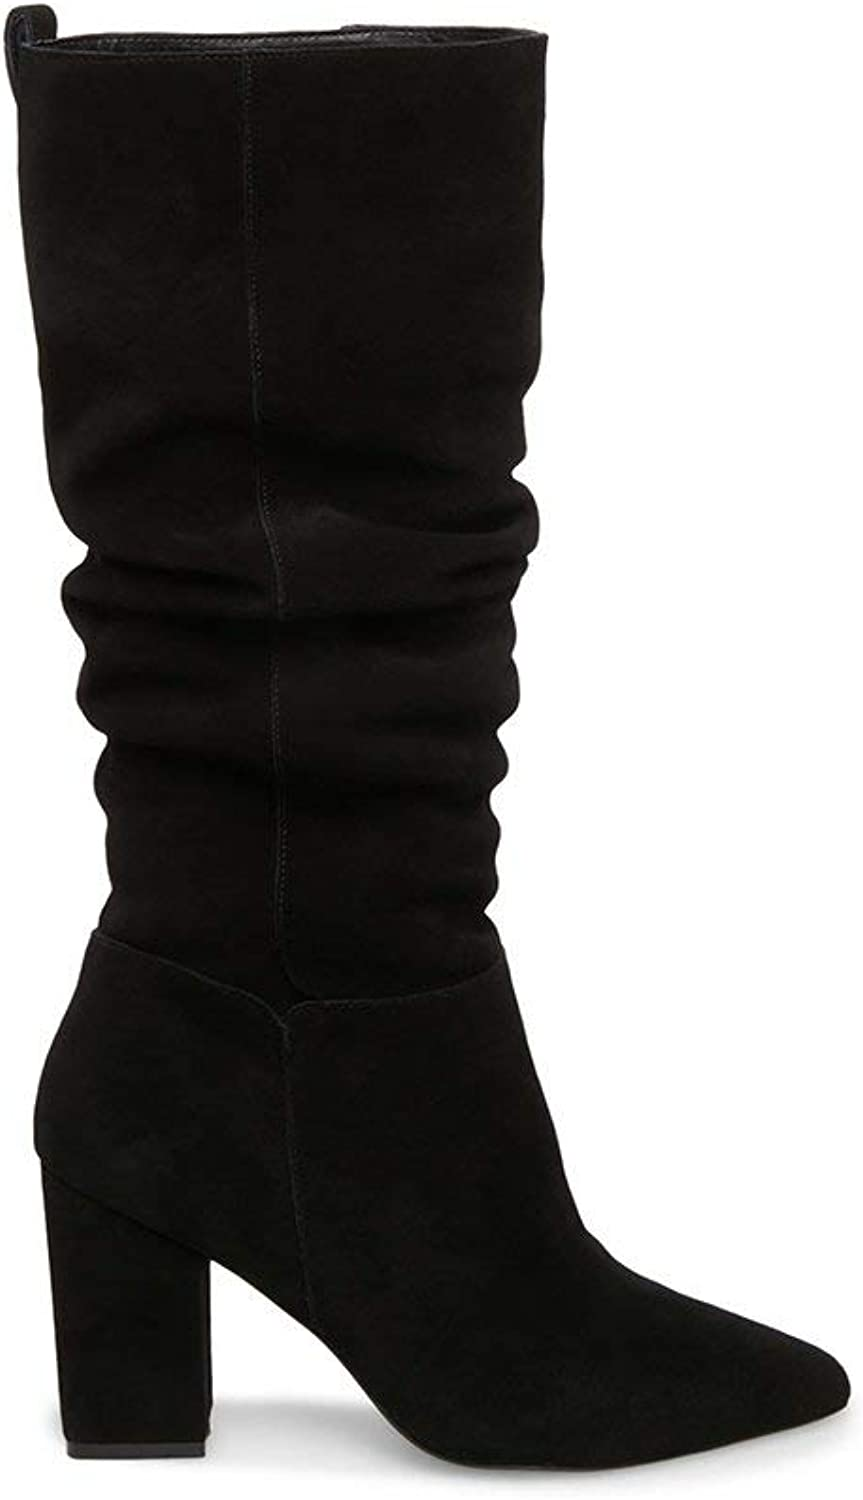 Steve Madden Women's Raddle Boot Dress